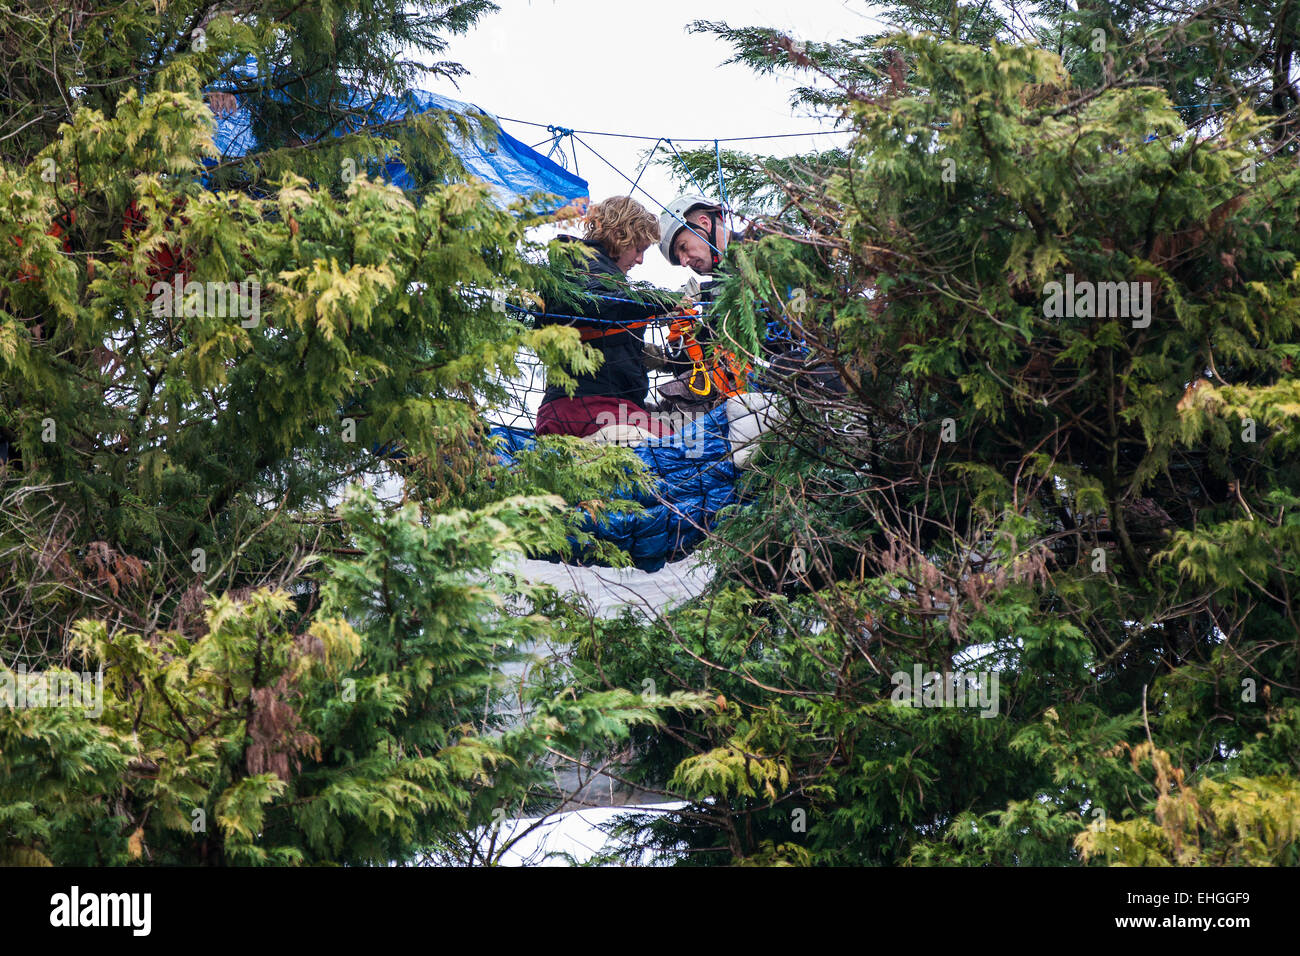 Bristol, UK. 13th Mar, 2015. Bailiffs and specialist climbers evicted more tree protesters who are preventing construction - Stock Image